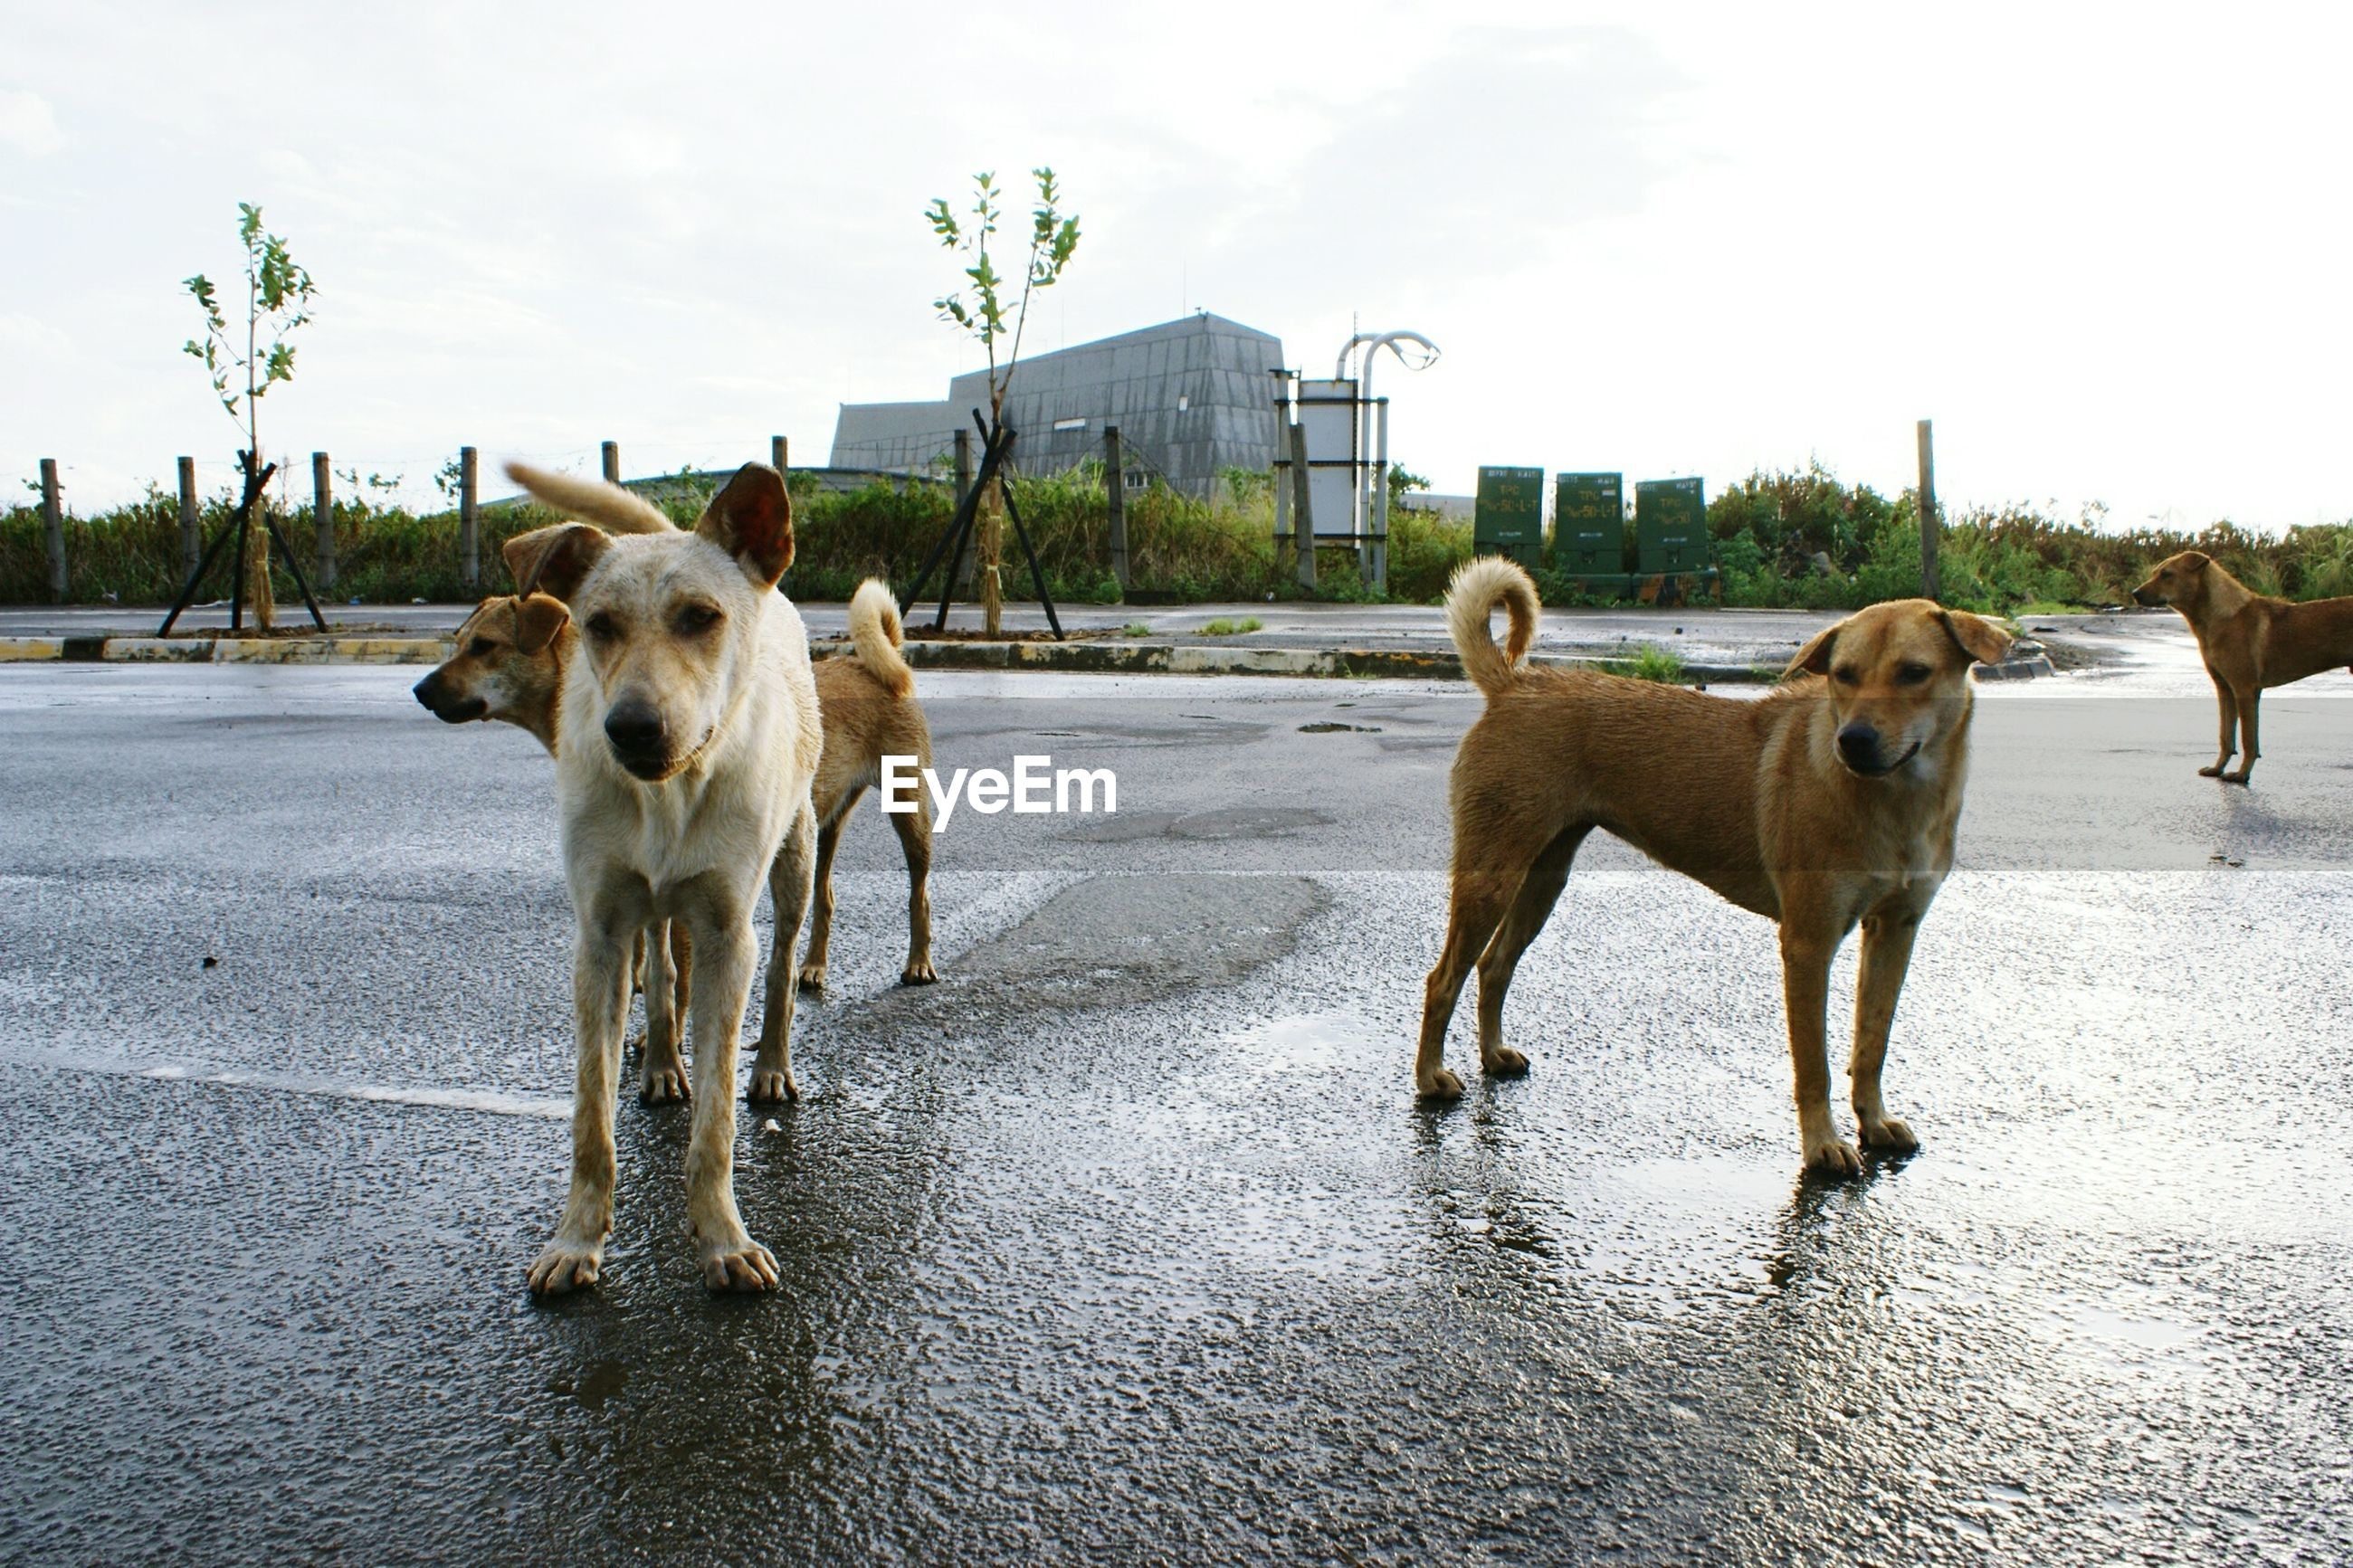 Portrait of dogs standing on road